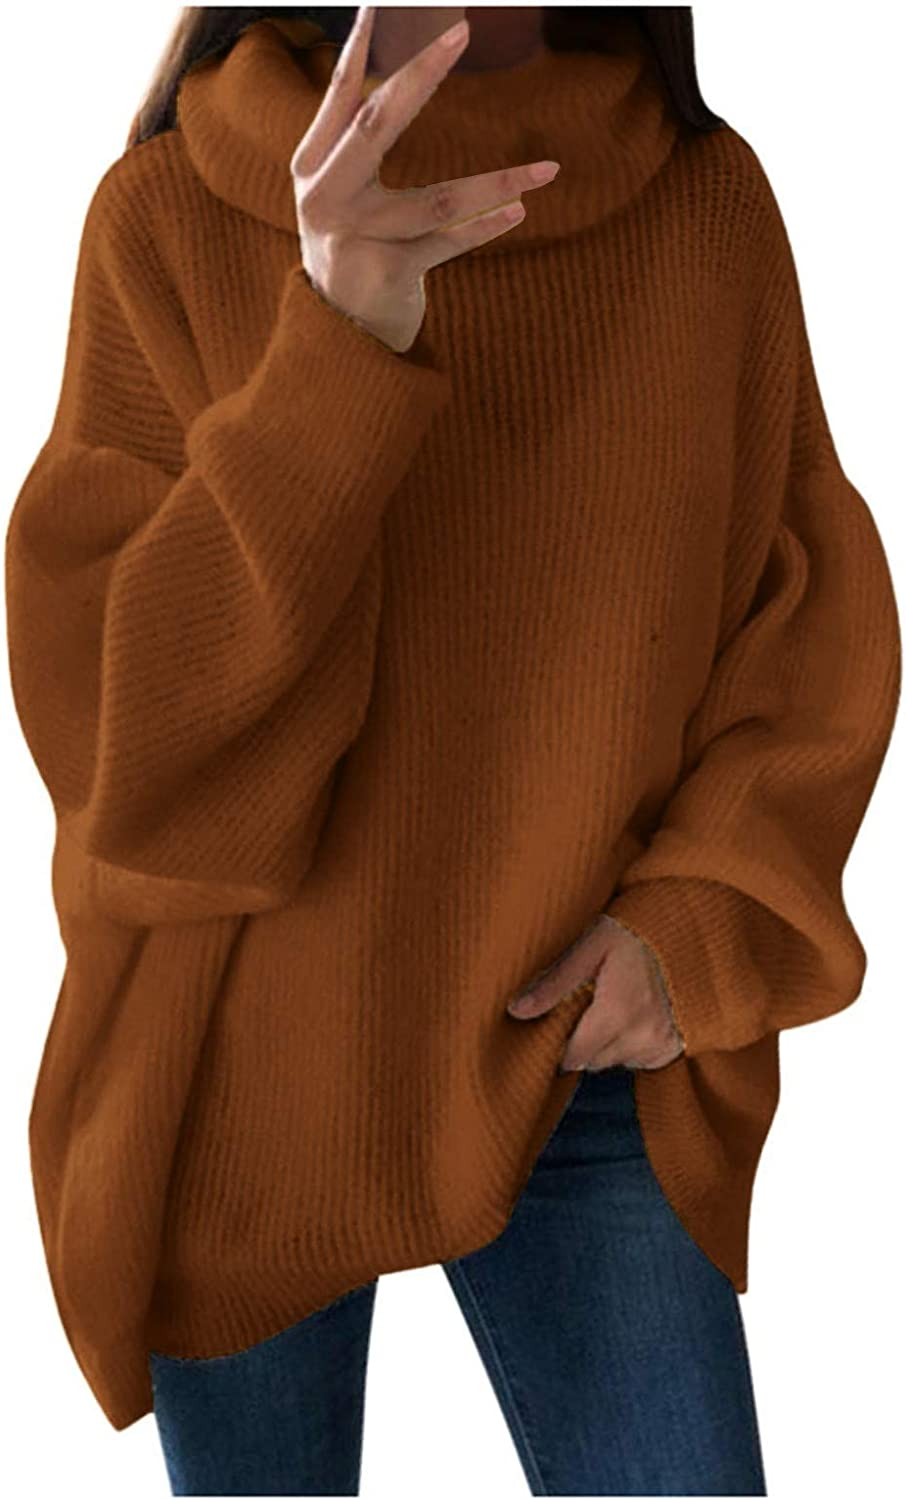 Turtleneck for Women Plus Size Solid Casual High Collar Shoulder Pocket Knitted Loose Sweater Knitwear Top